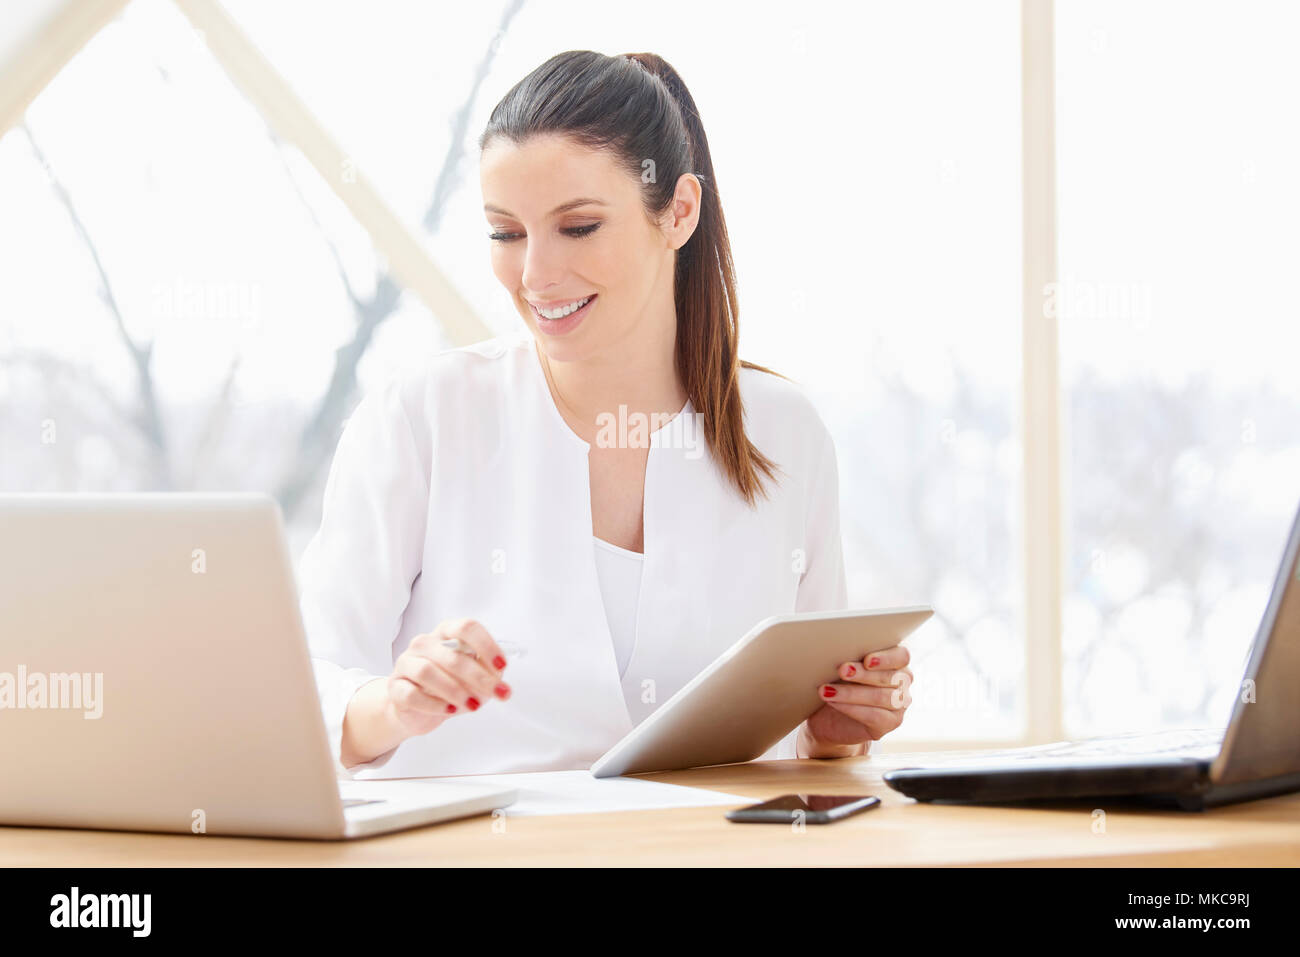 Portrait of attractive young businesswoman using digital tablet and computer at the office. - Stock Image